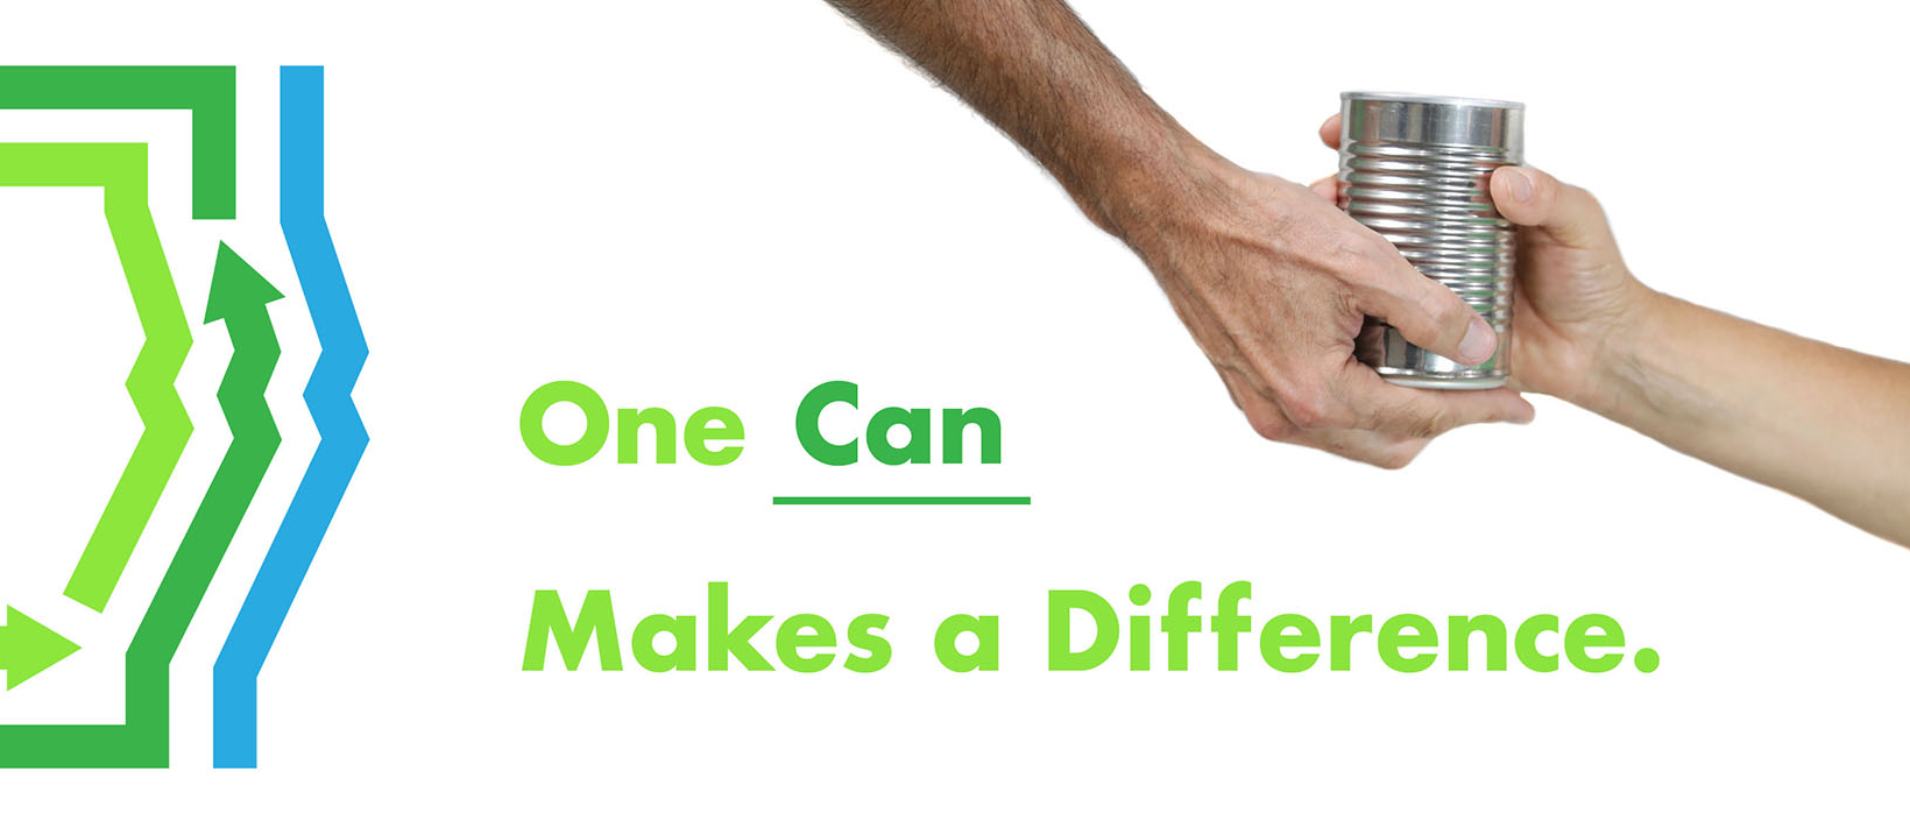 one can of food makes difference